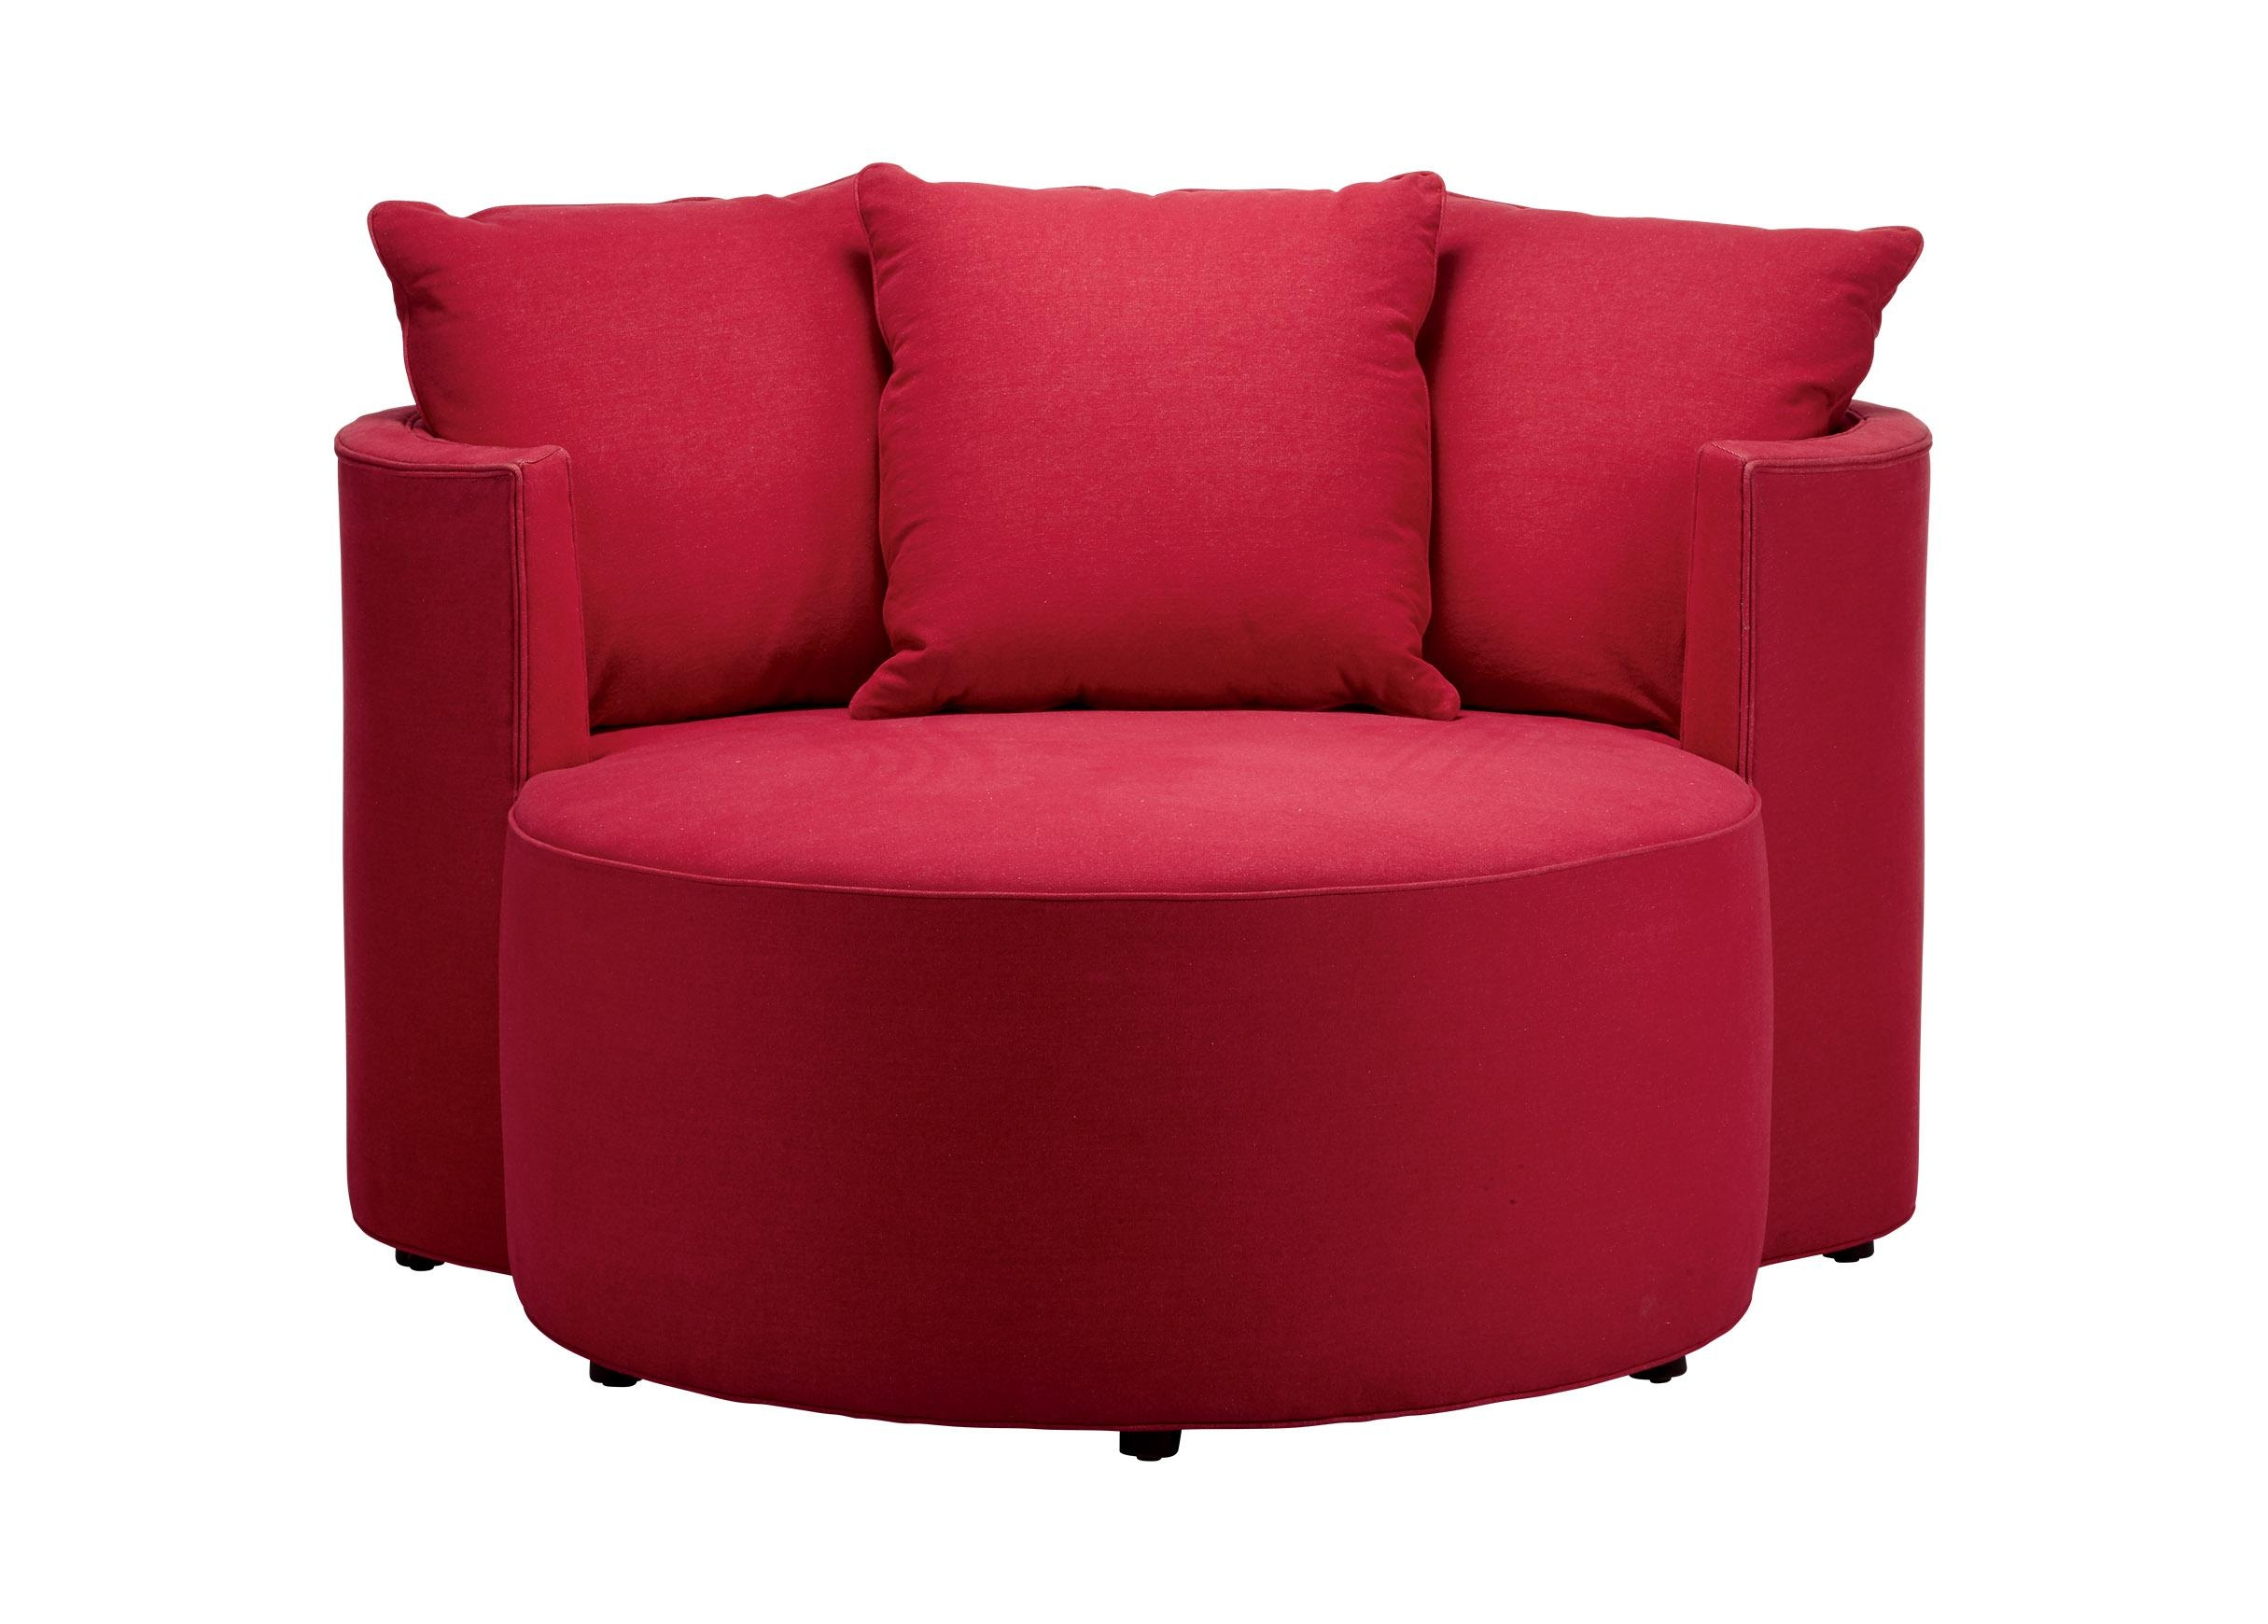 20 Choices Of Mickey Mouse Clubhouse Couches Sofa Ideas